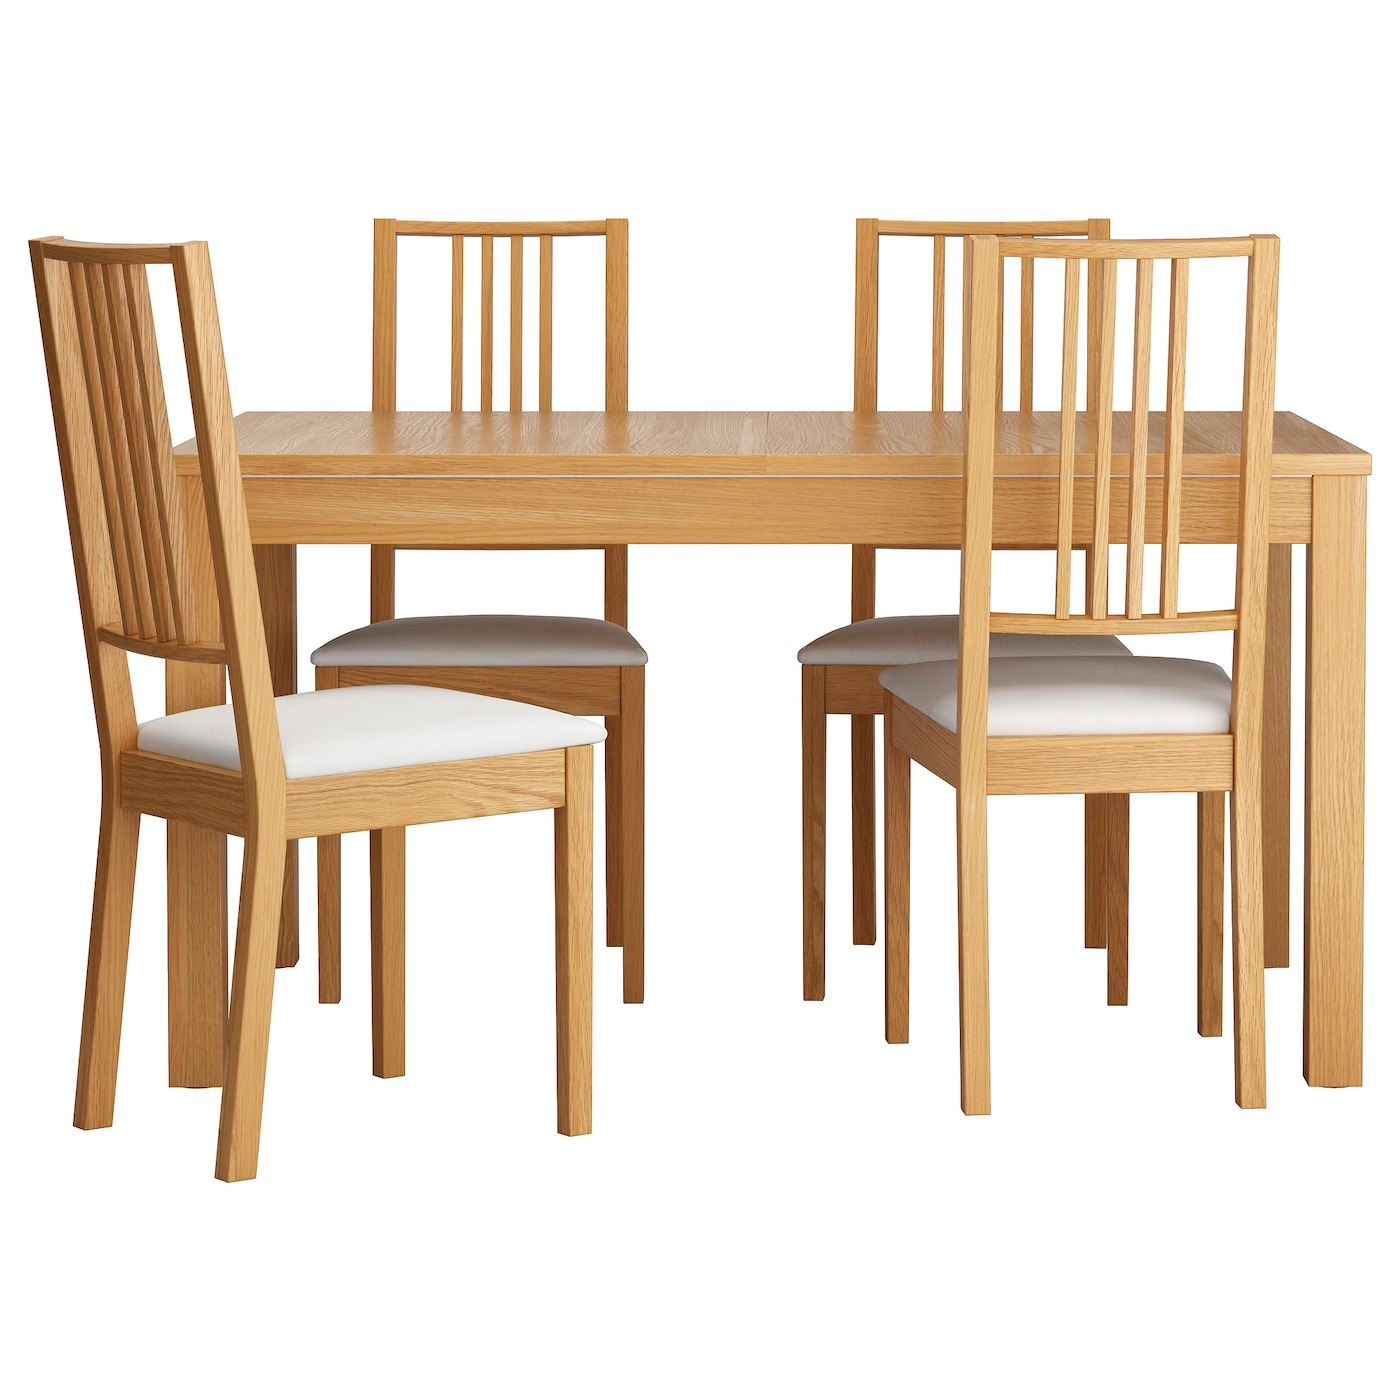 Dining table sets 4 chairs - Ikea Brjebjursta Table And 4 Chairs The Surface Is Easy To